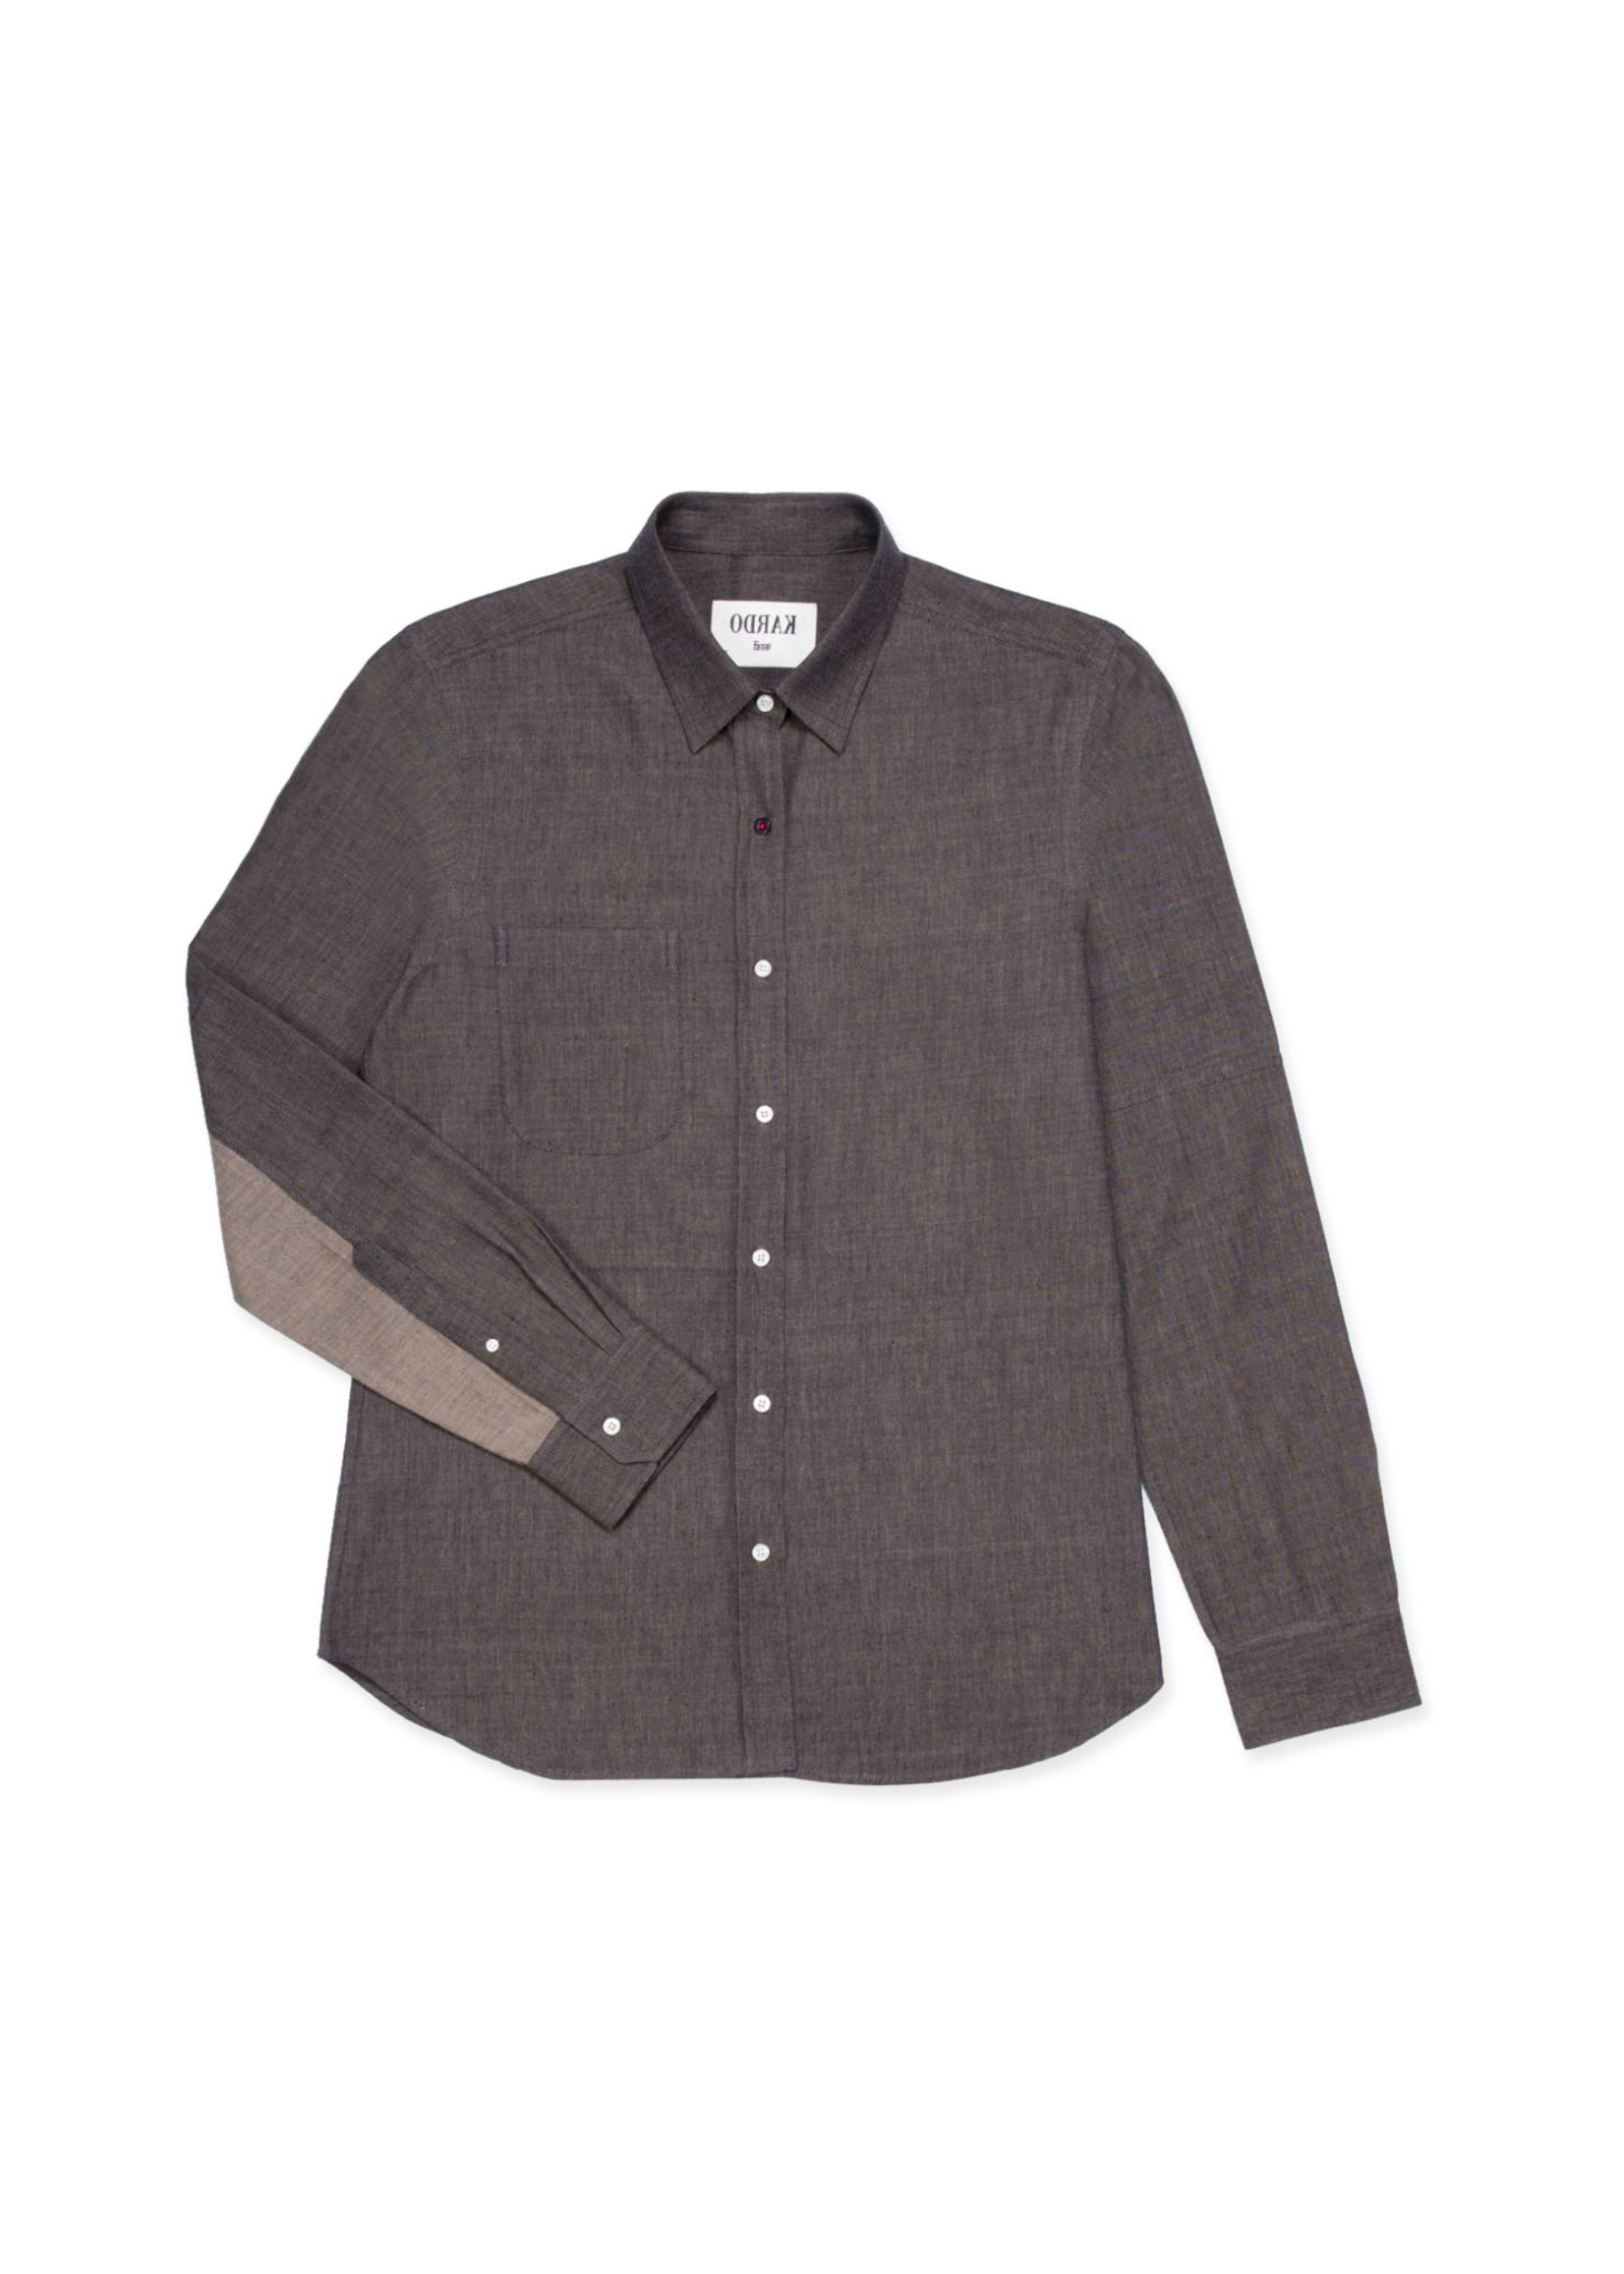 Kardo Stevie Chocolate Twill Sport Shirt by Kardo